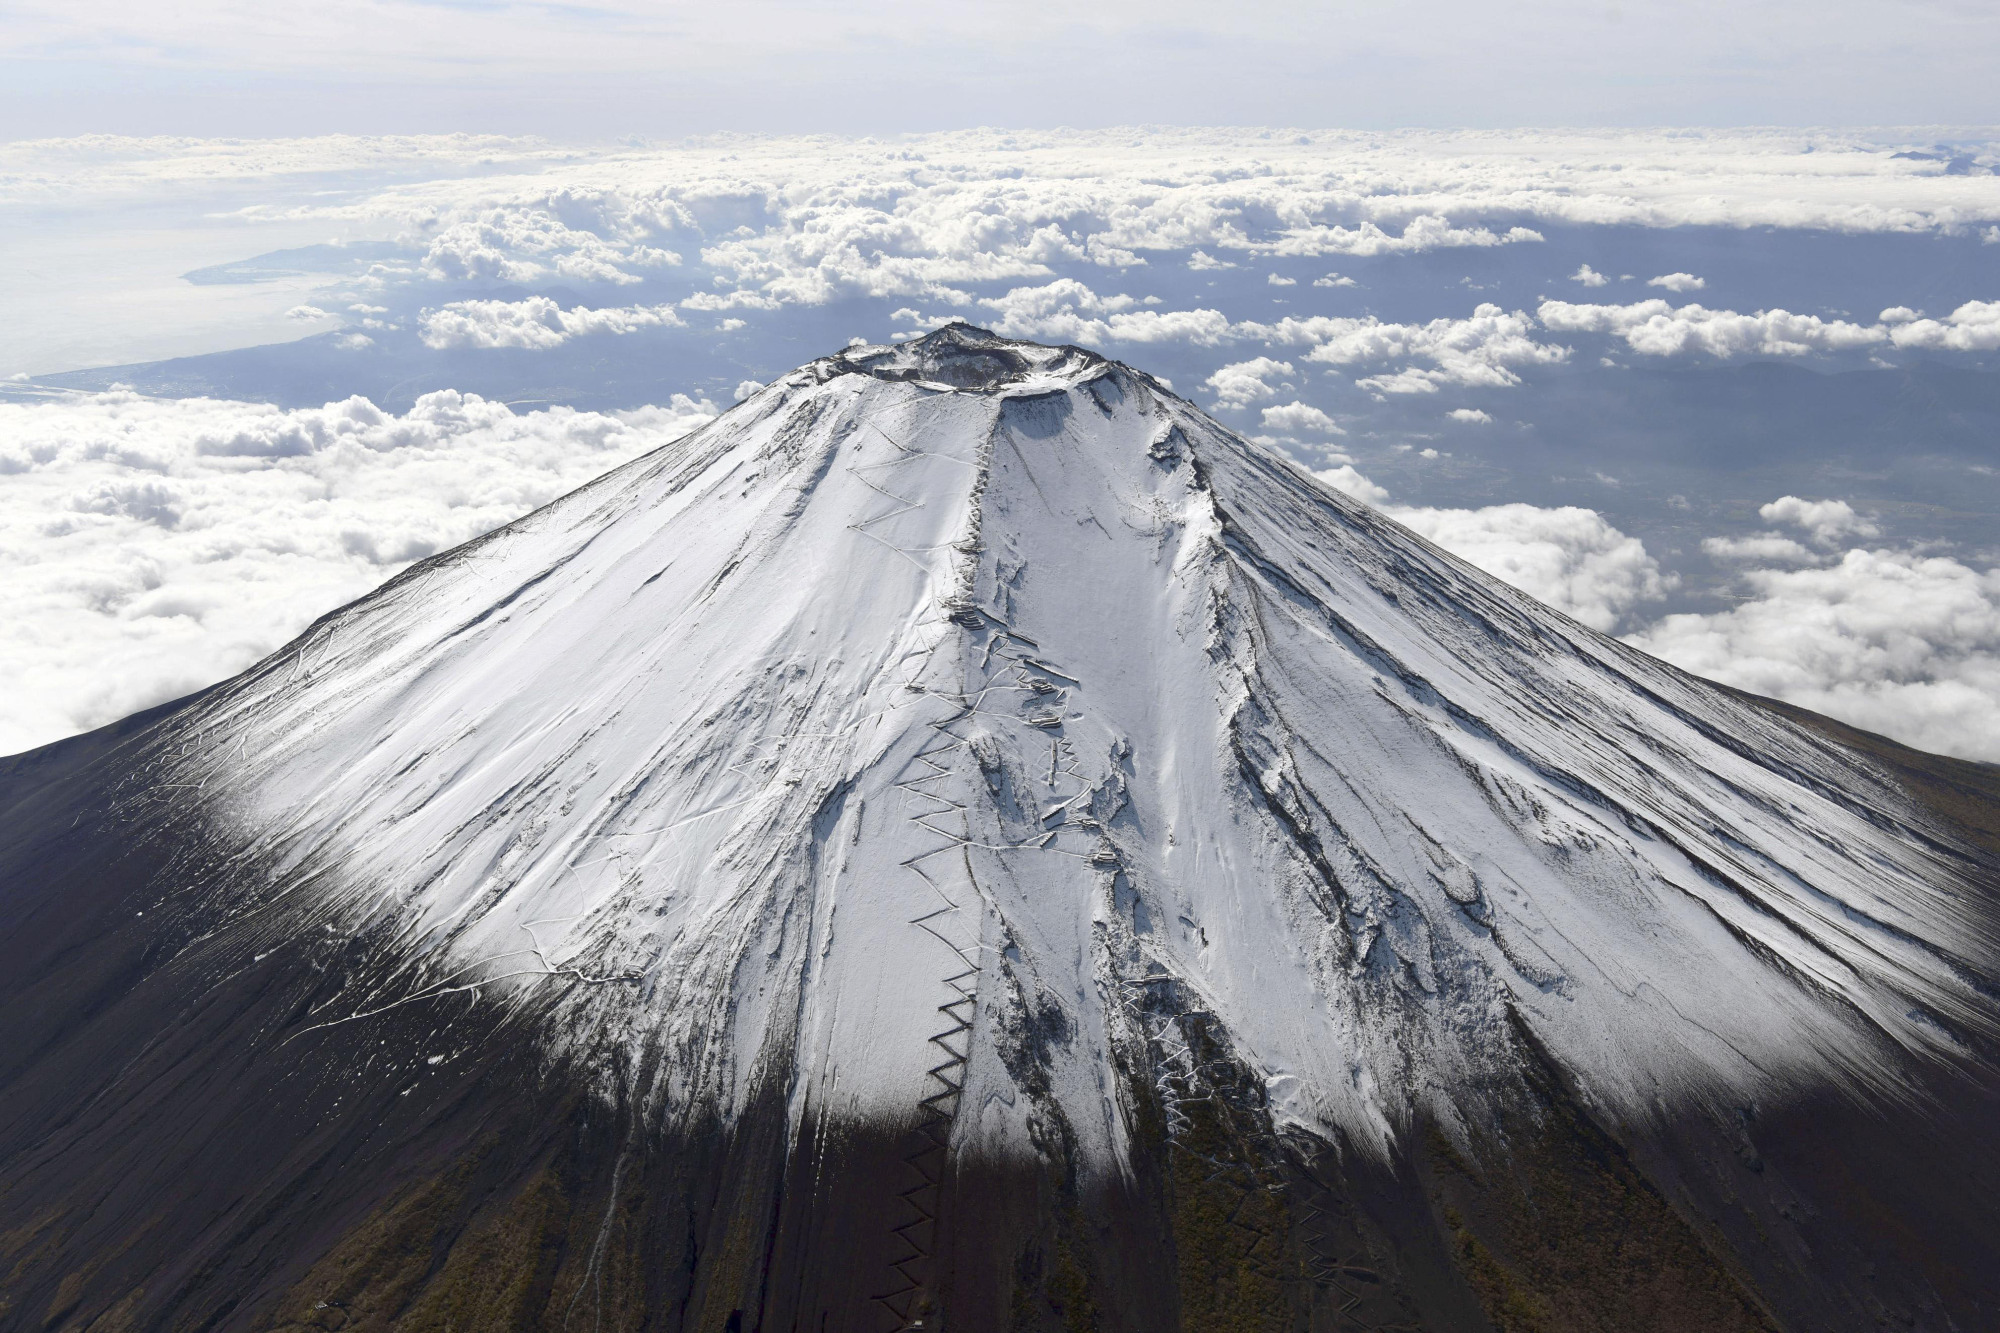 If Mount Fuji were to erupt, it could cause up to ¥2.5 trillion in damage. | KYODO